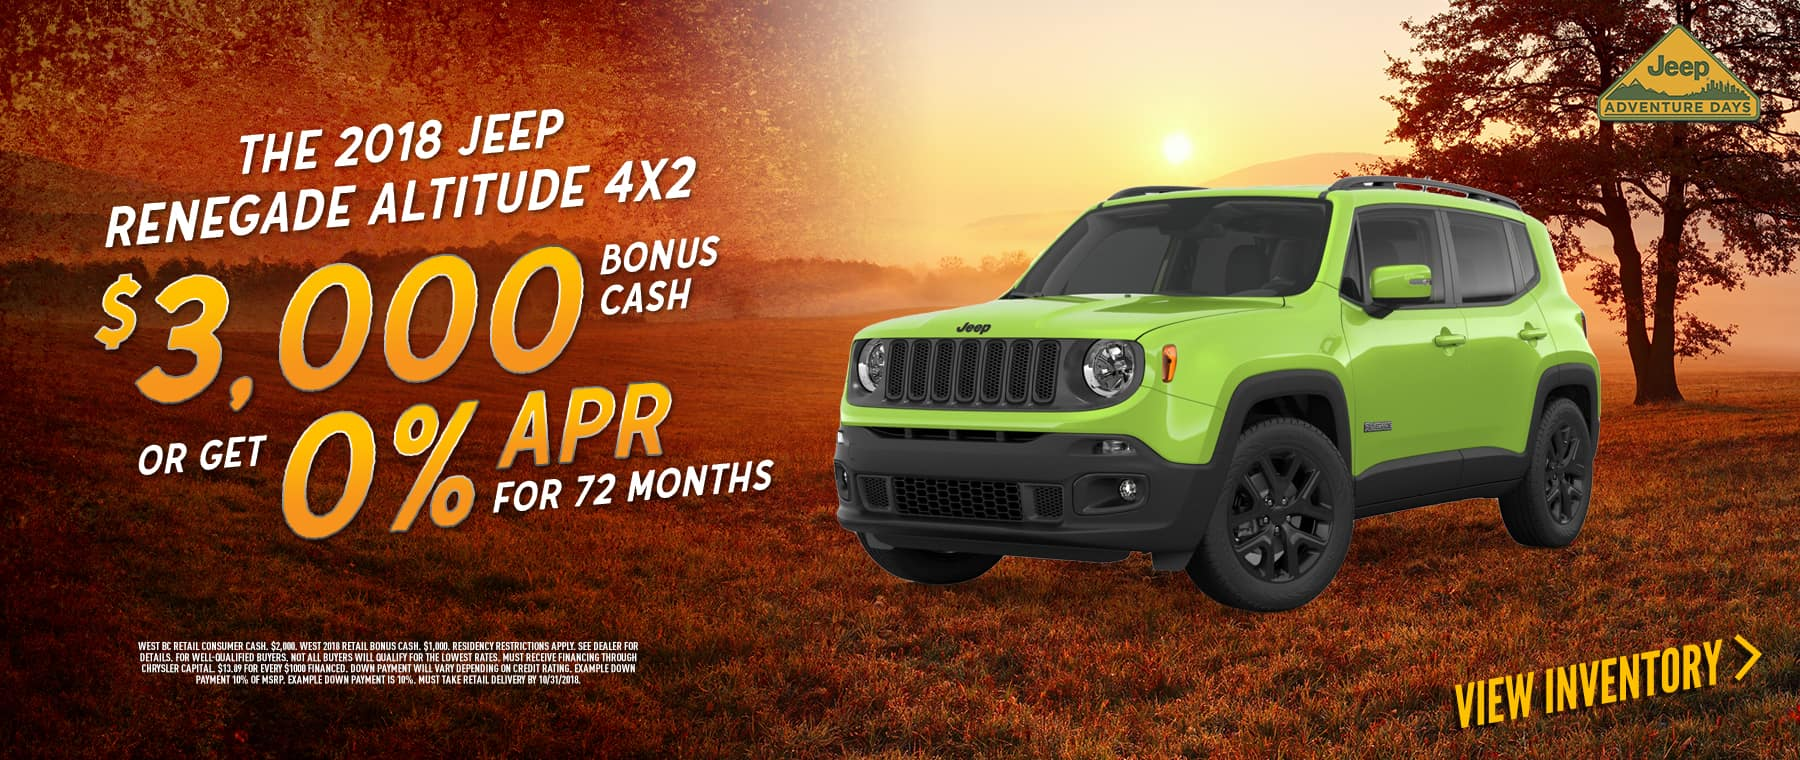 2018-jeep-renegade-altitude-4by2-zero-percent-apr